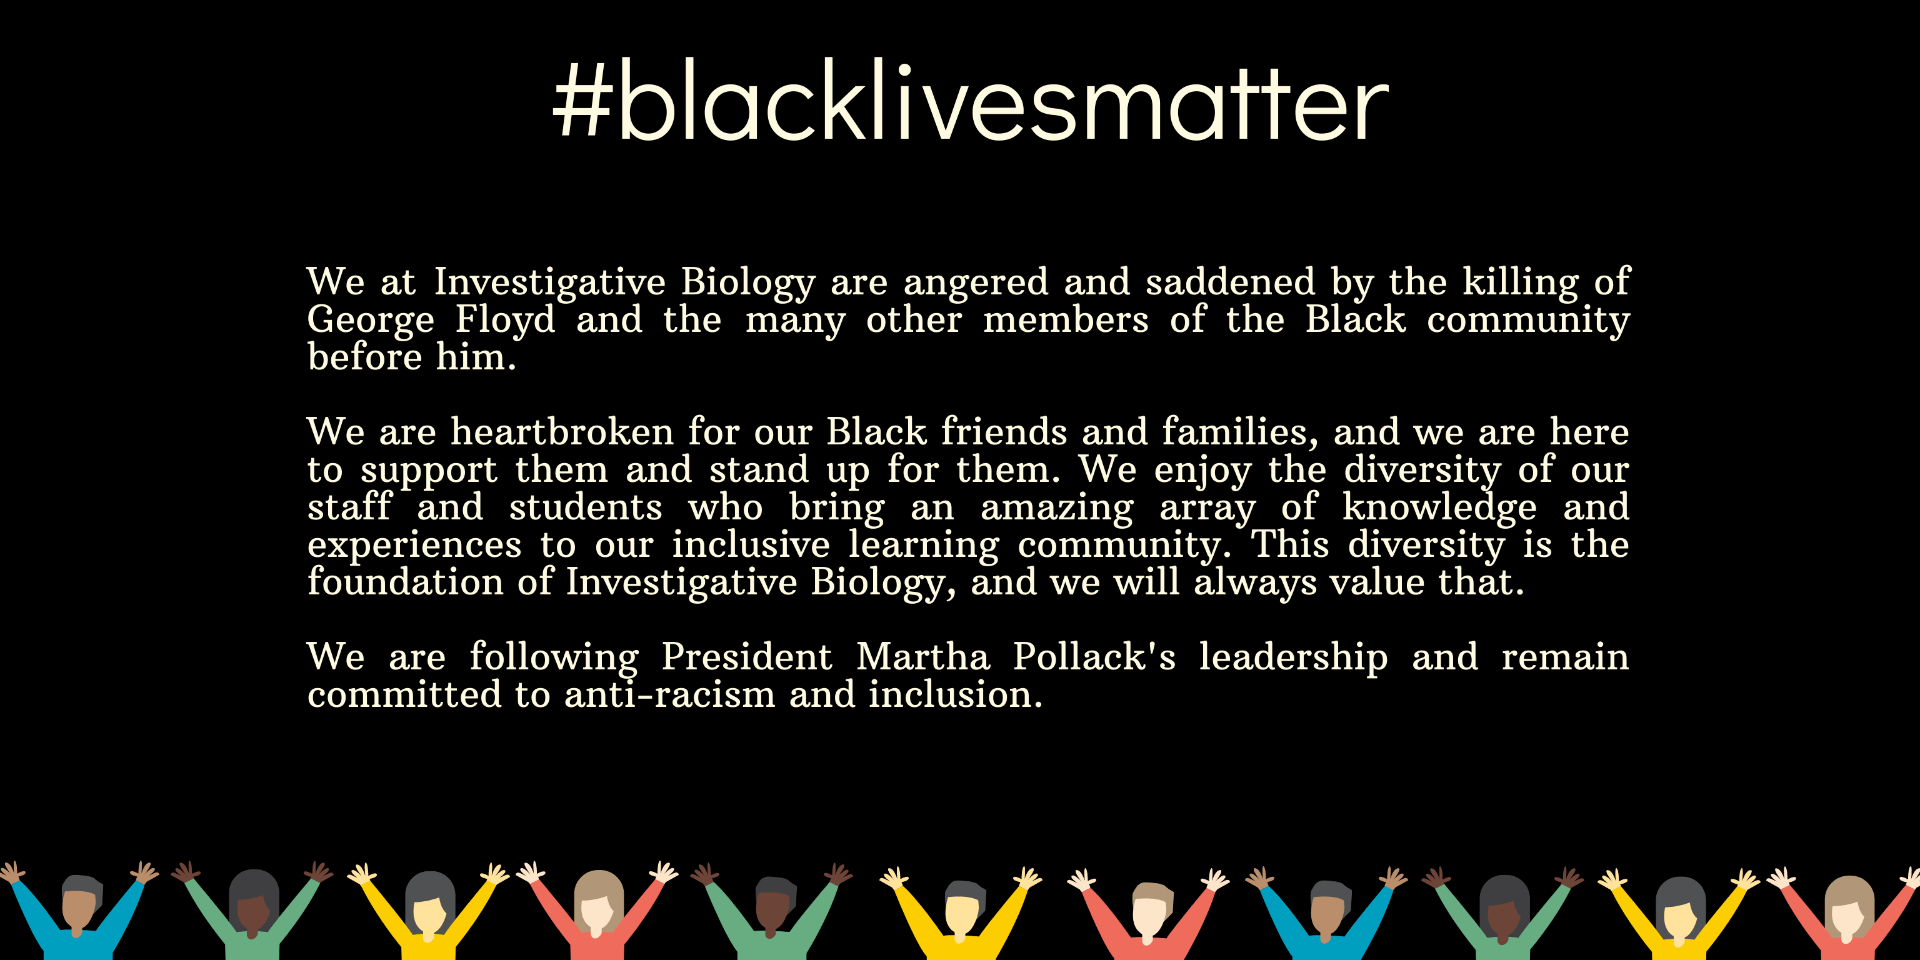 Statement on course policy regarding racism and the black lives matter movement